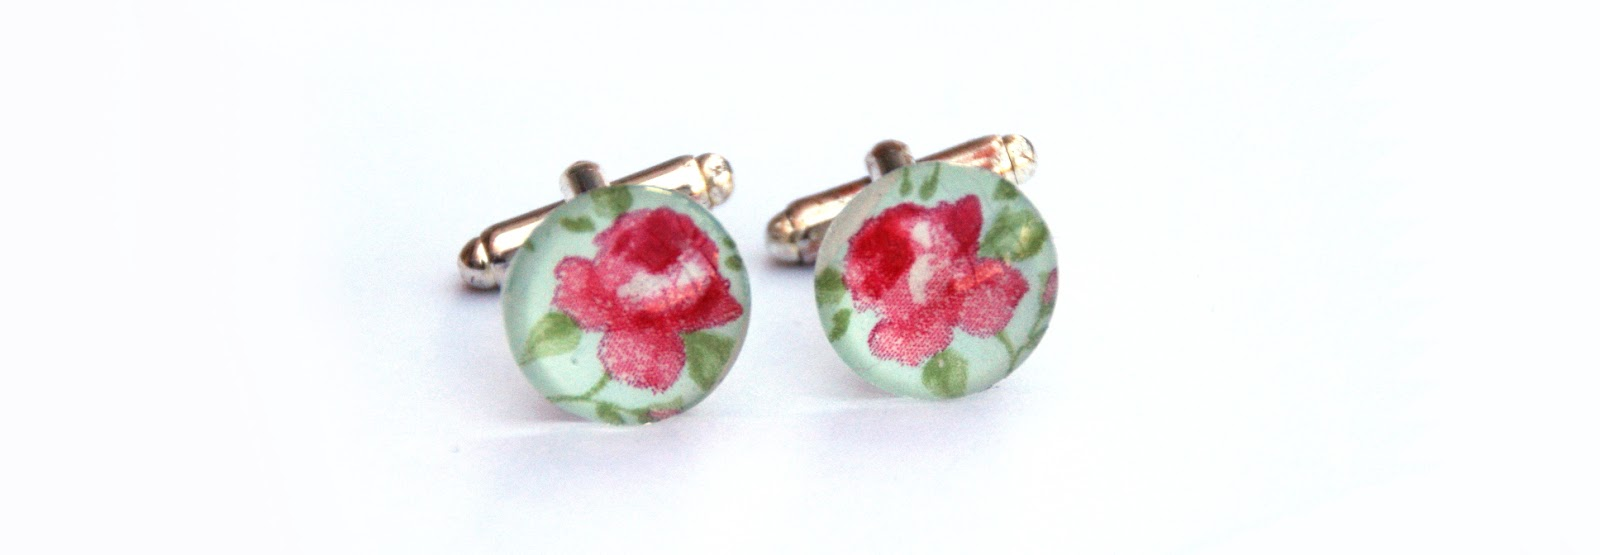 https://www.etsy.com/uk/listing/178922753/vintage-rose-cufflinks-womens